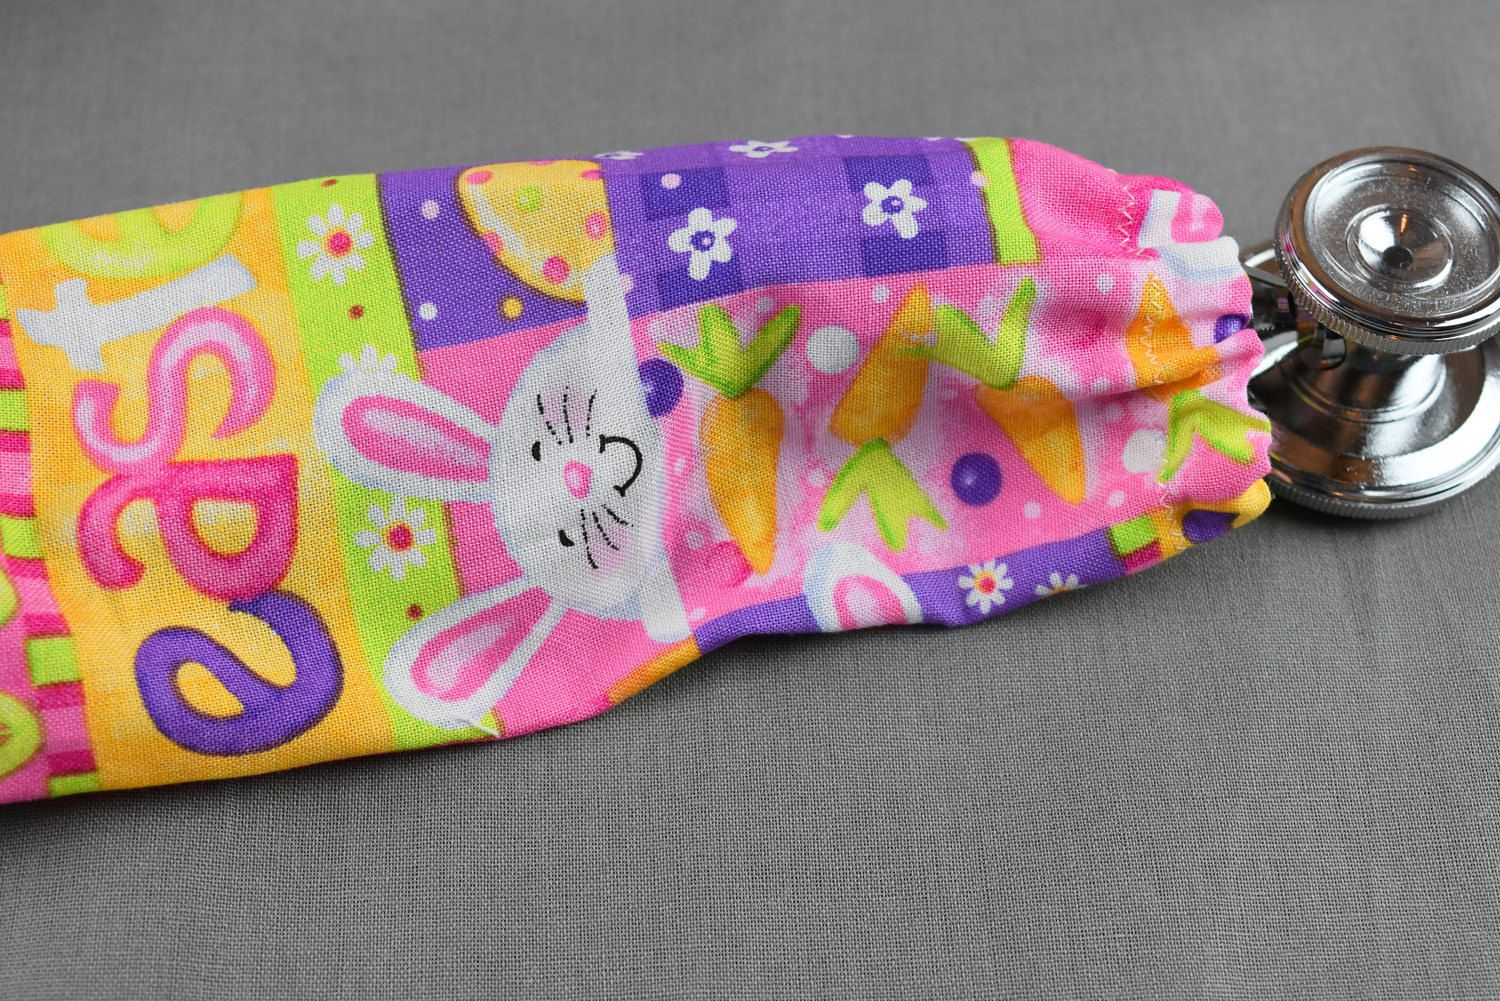 Easter stethoscope cover holiday stethoscope cover handmade easter stethoscope cover holiday stethoscope cover handmade nurse doctor gift stethoscope cord cover easter gift easter bunny negle Images